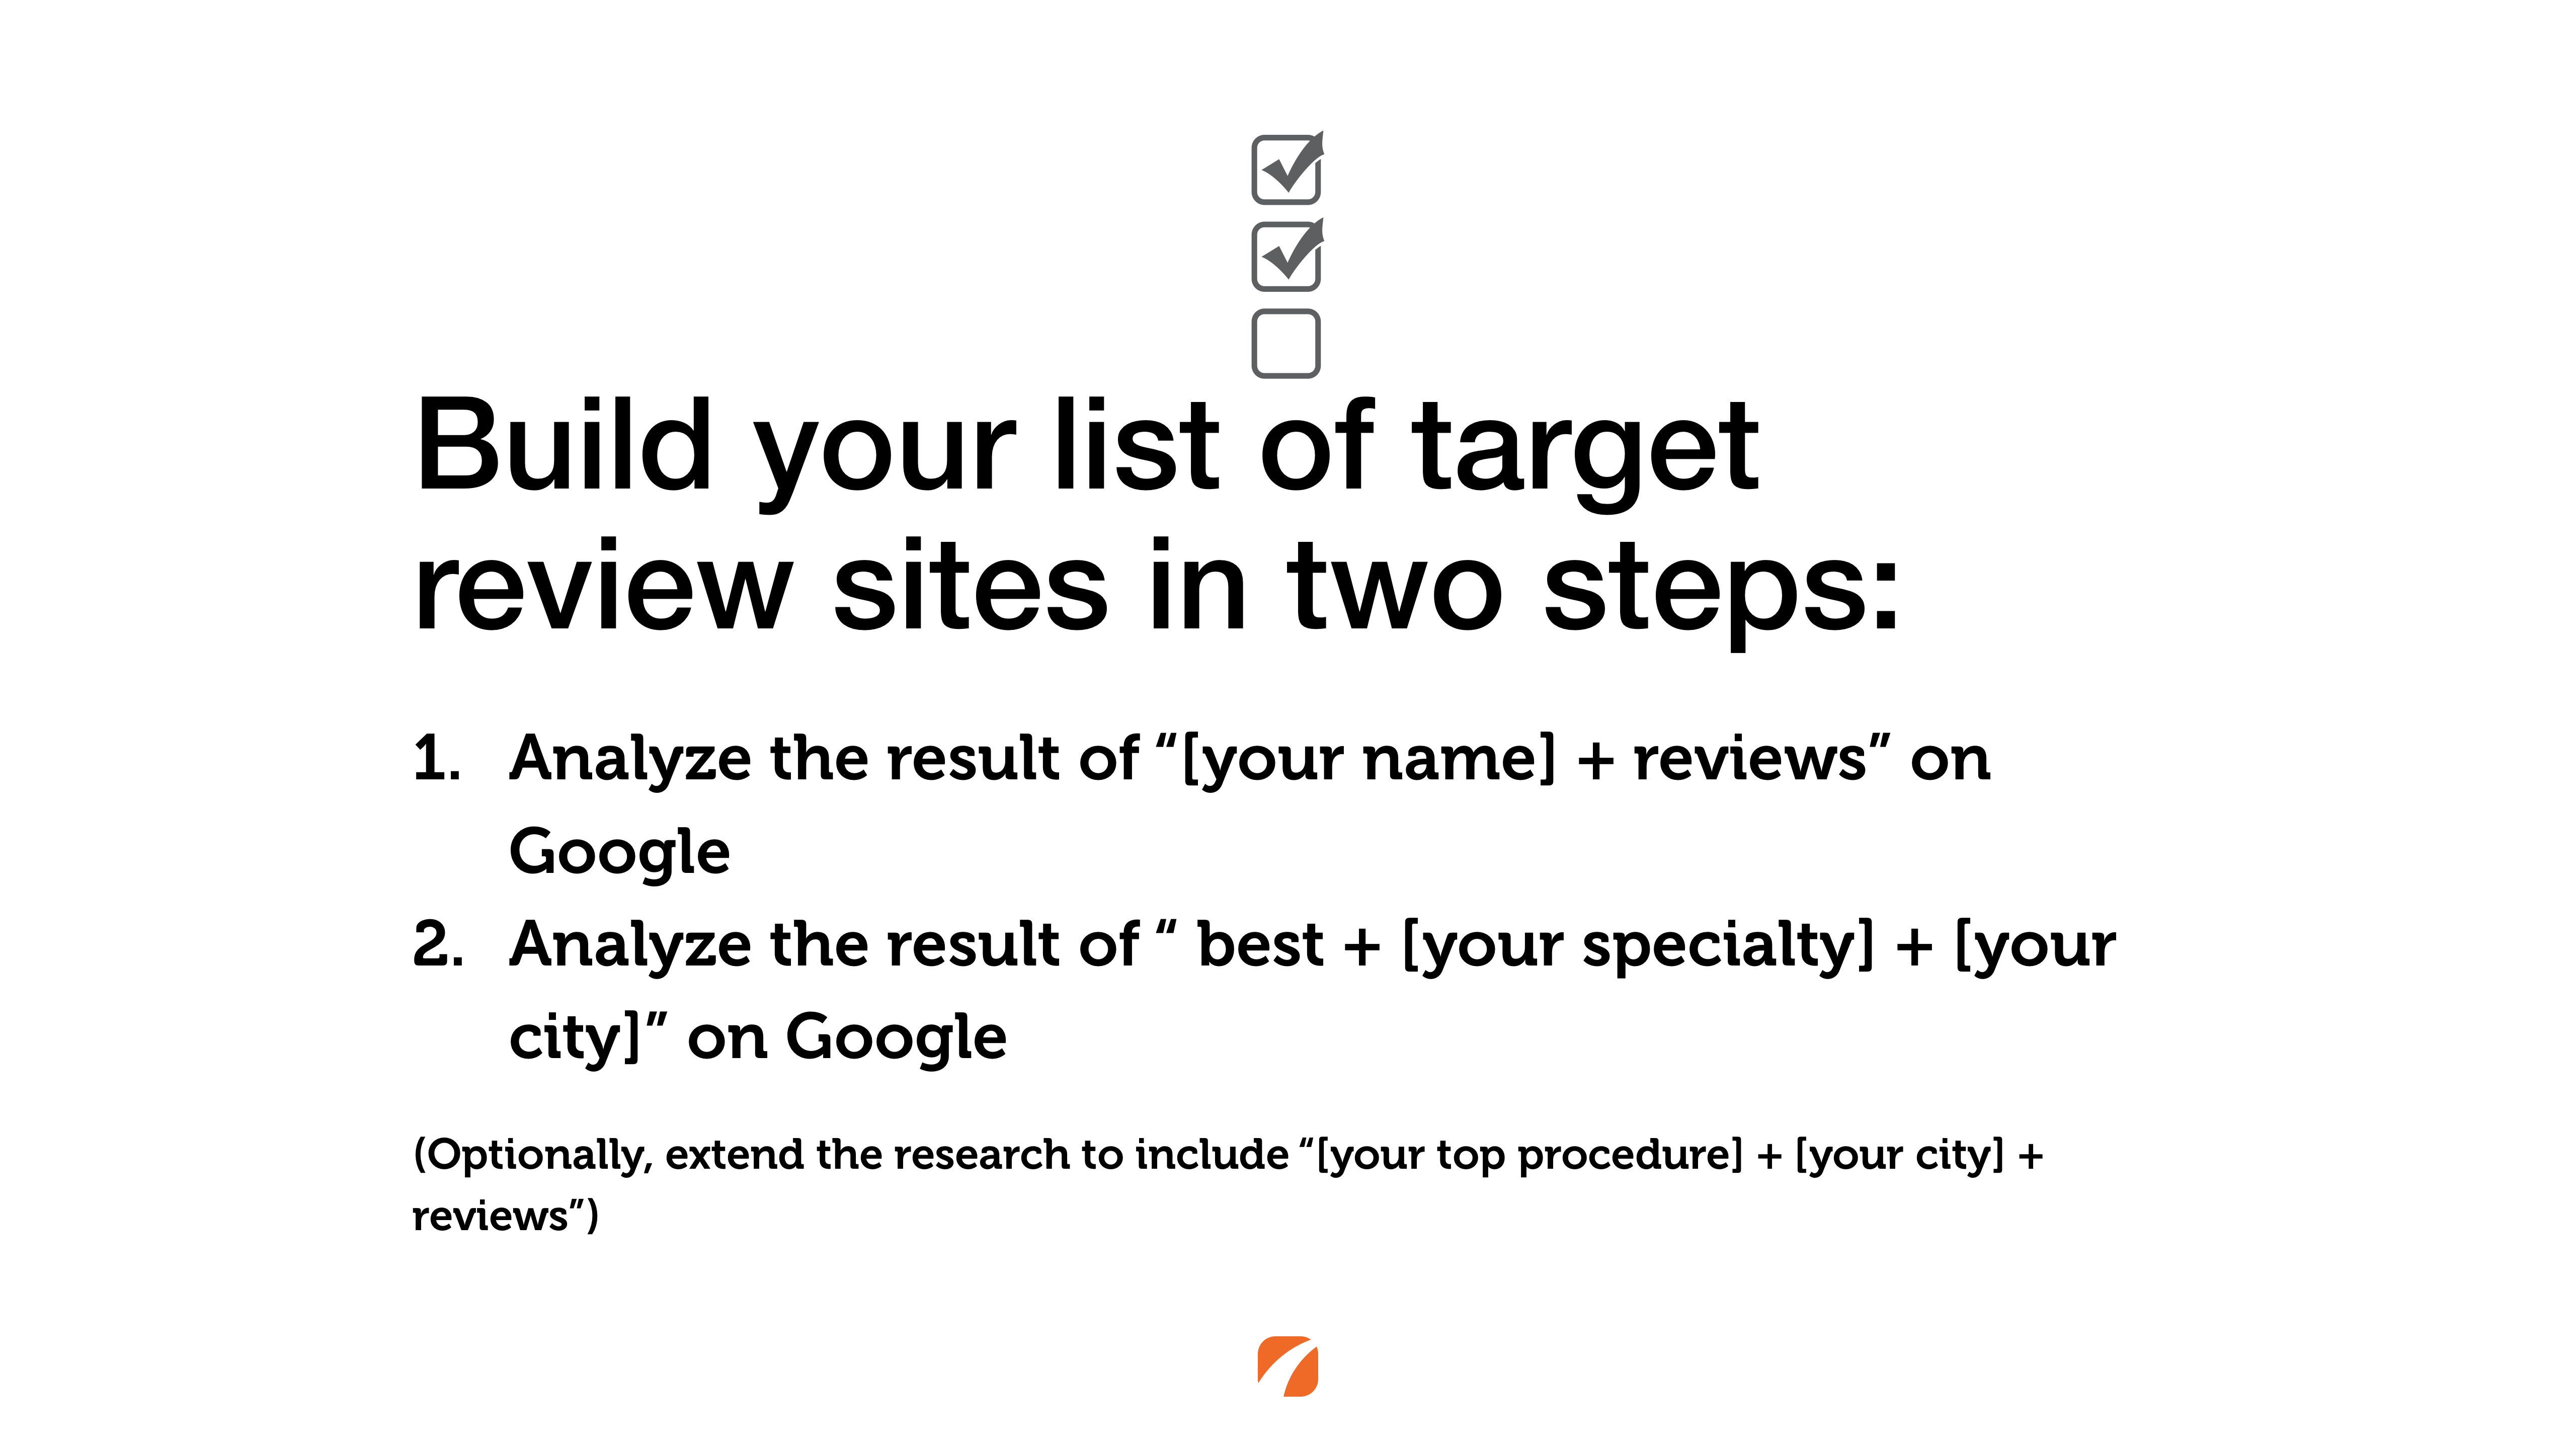 Two steps to build your list of target review sites.